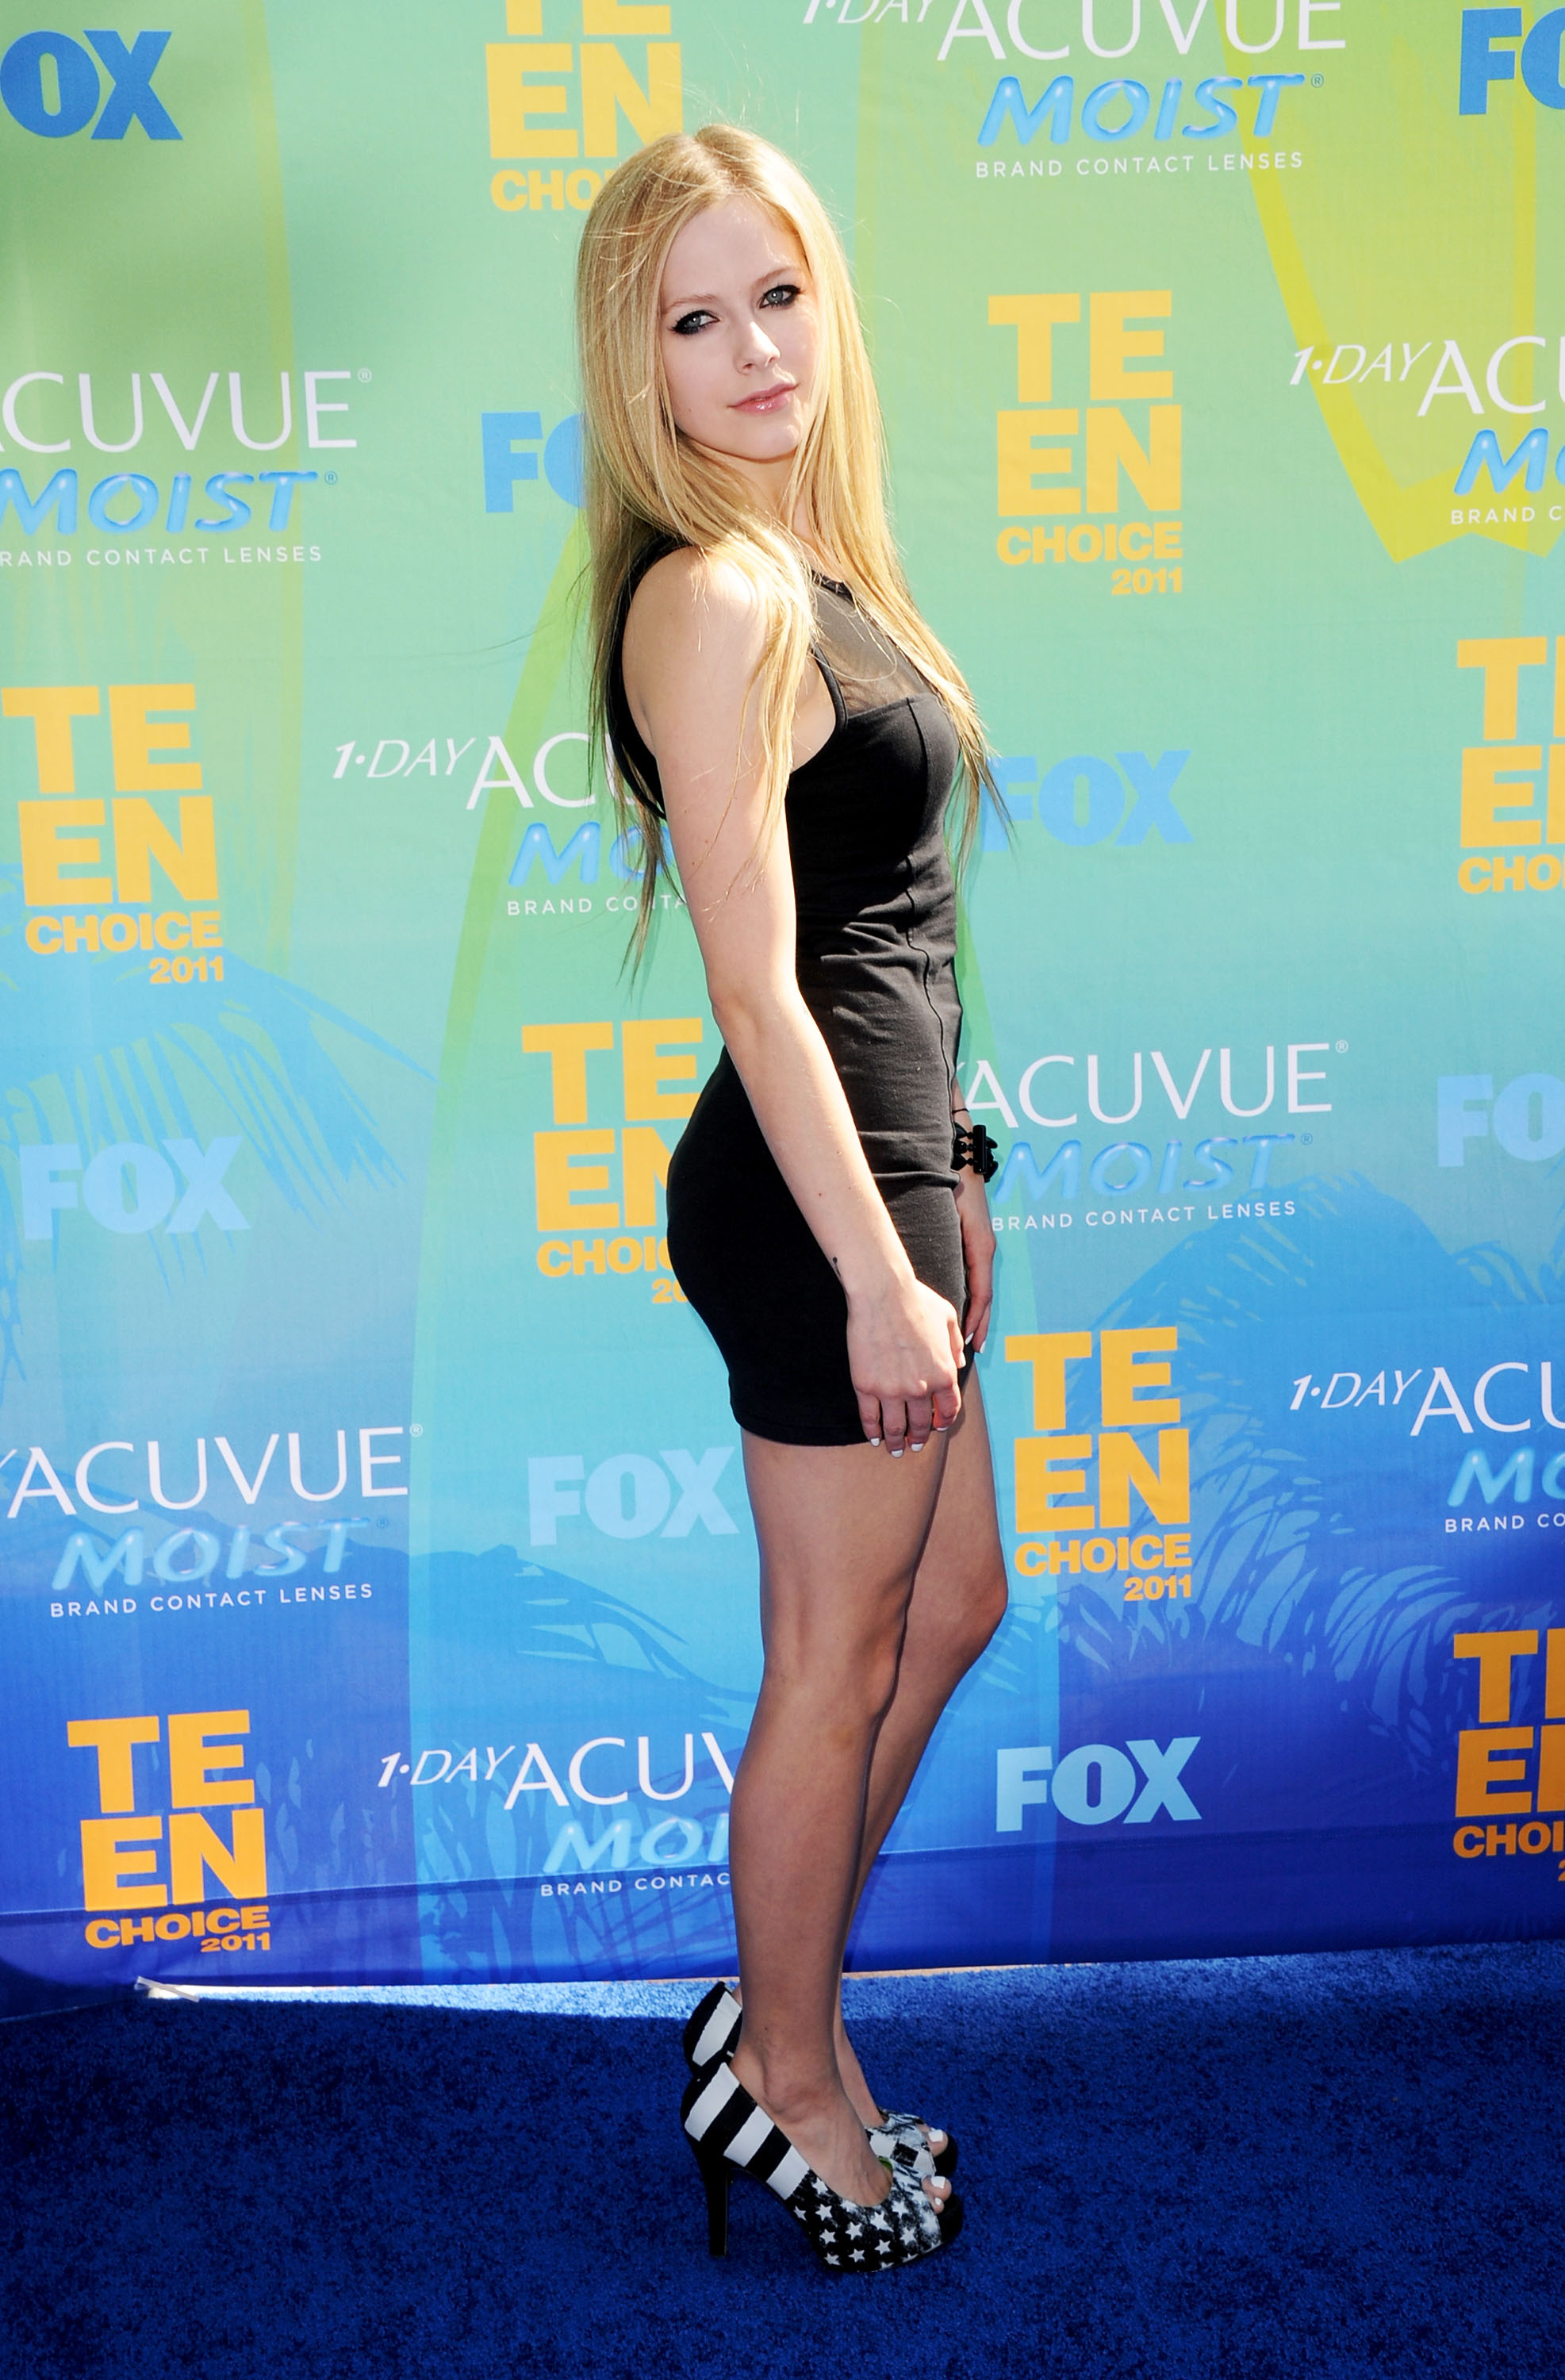 Avril Lavigne In Tight Mini See-Through Dress At 2011 Teen Choice ...